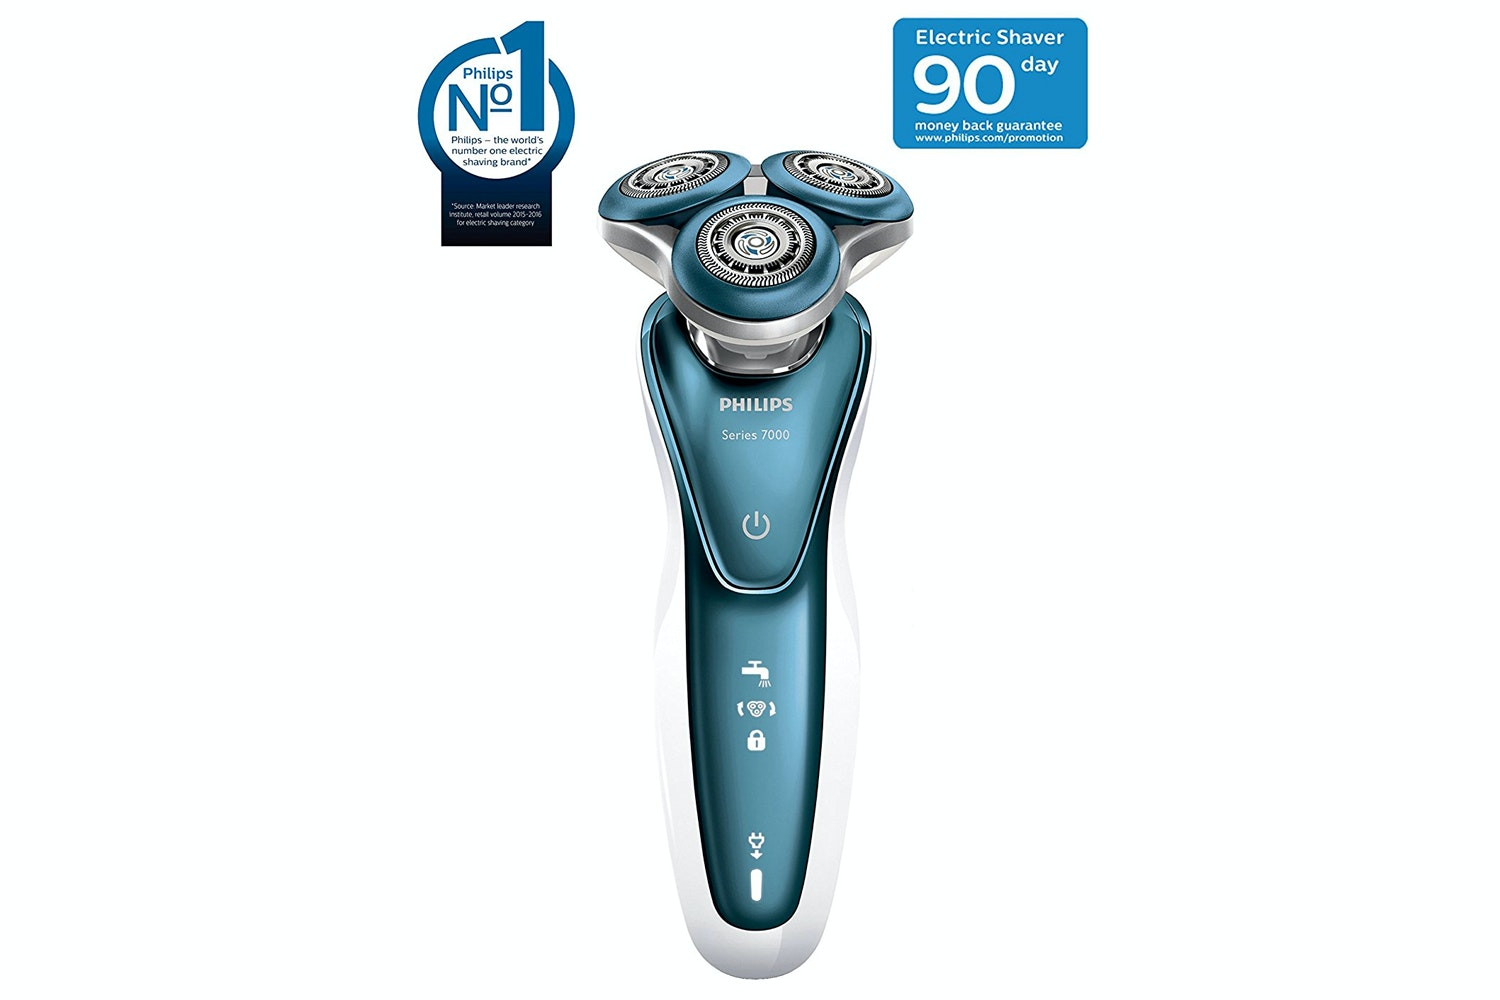 Philips Series 7000 Wet and Dry Men's Electric Shaver | S7370/12